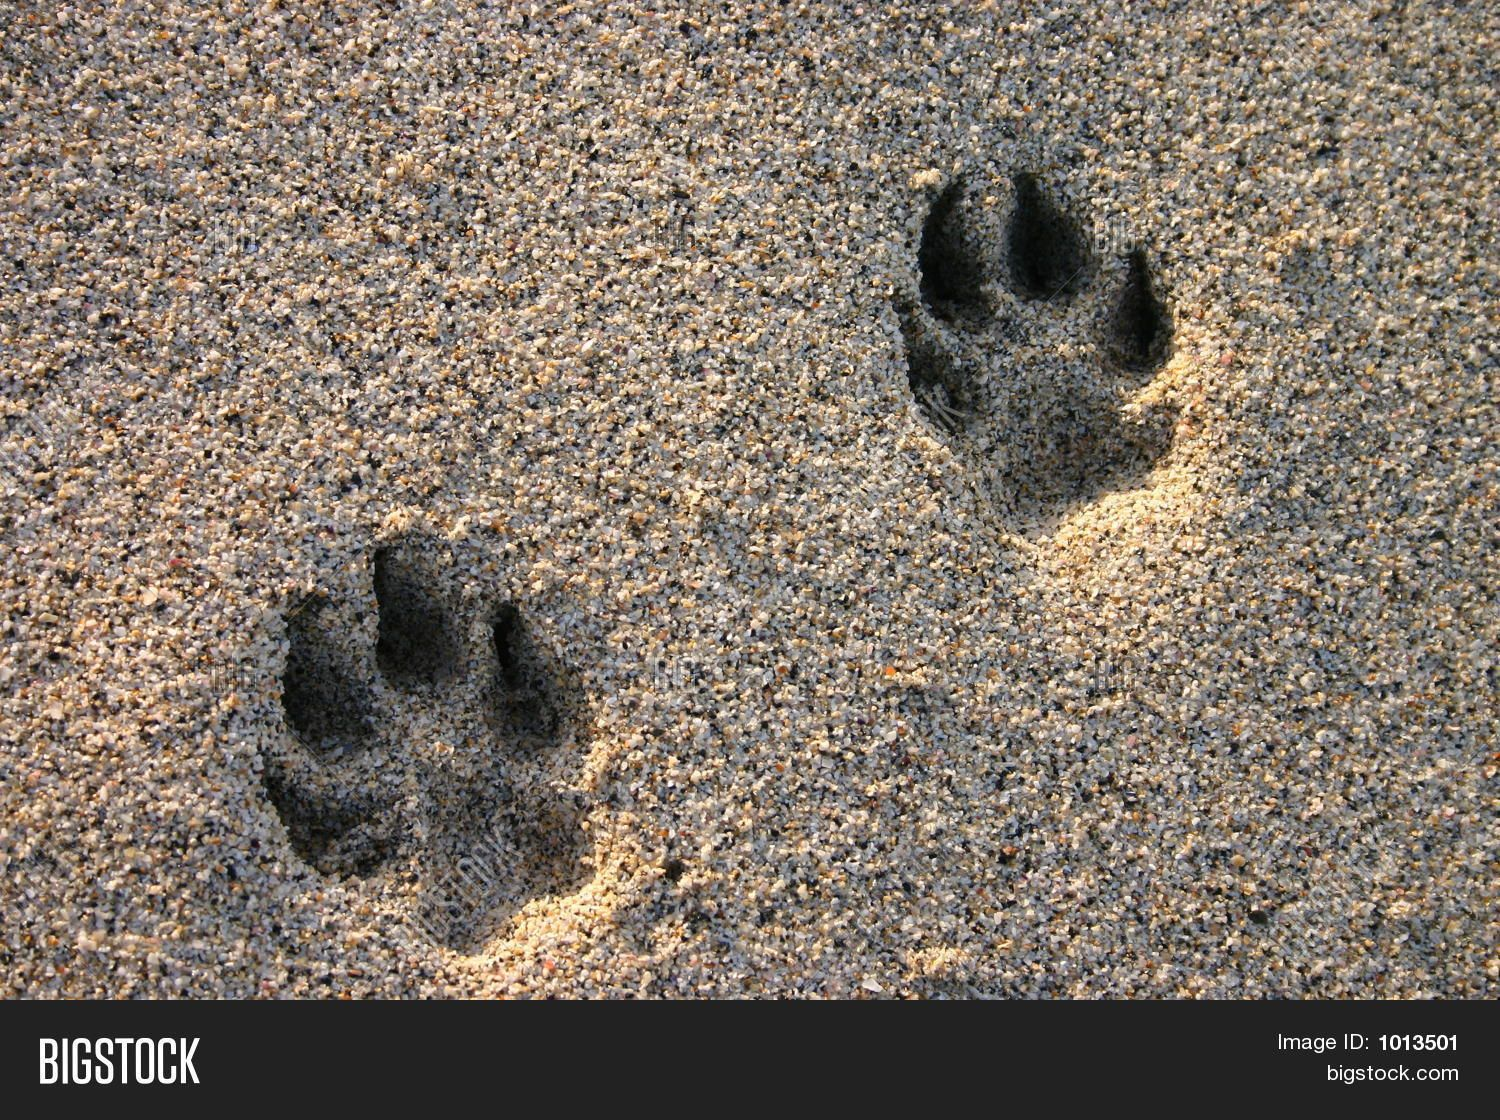 0d89090e7 Dog Paw Prints In The Beach Sand